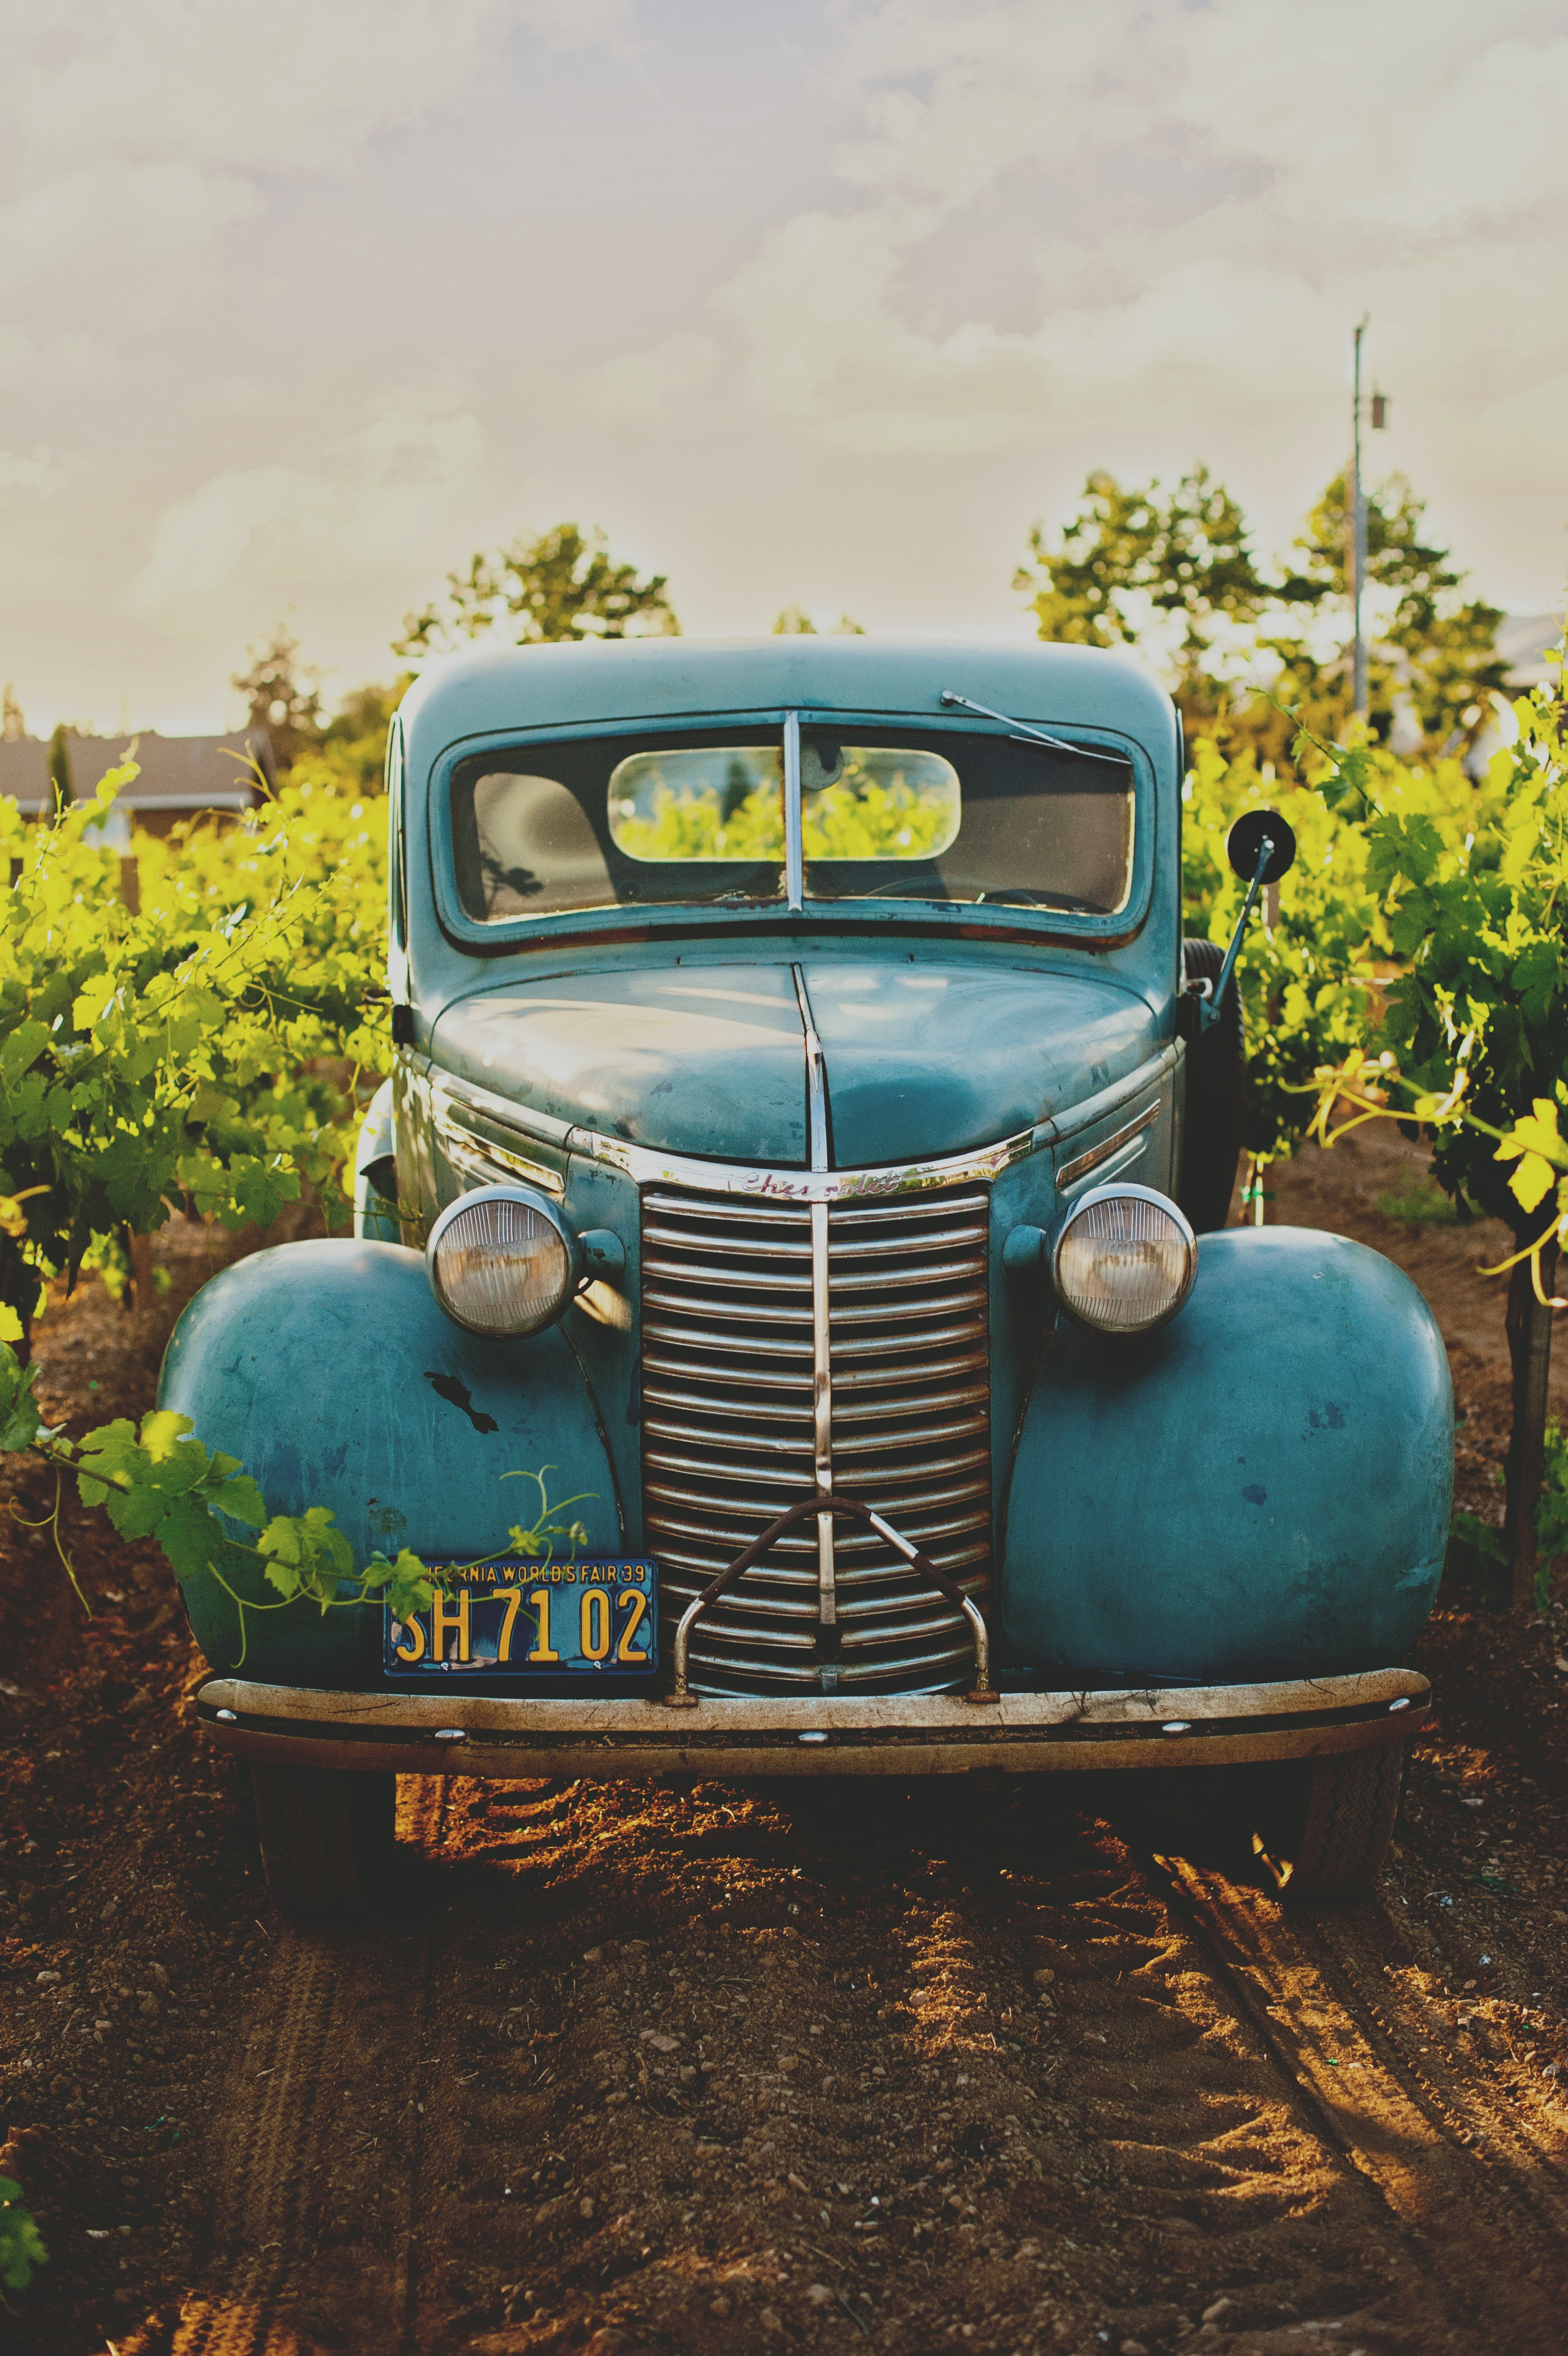 Front view of a vintage blue hot rod on a dirt road, surrounded by plants and trees.